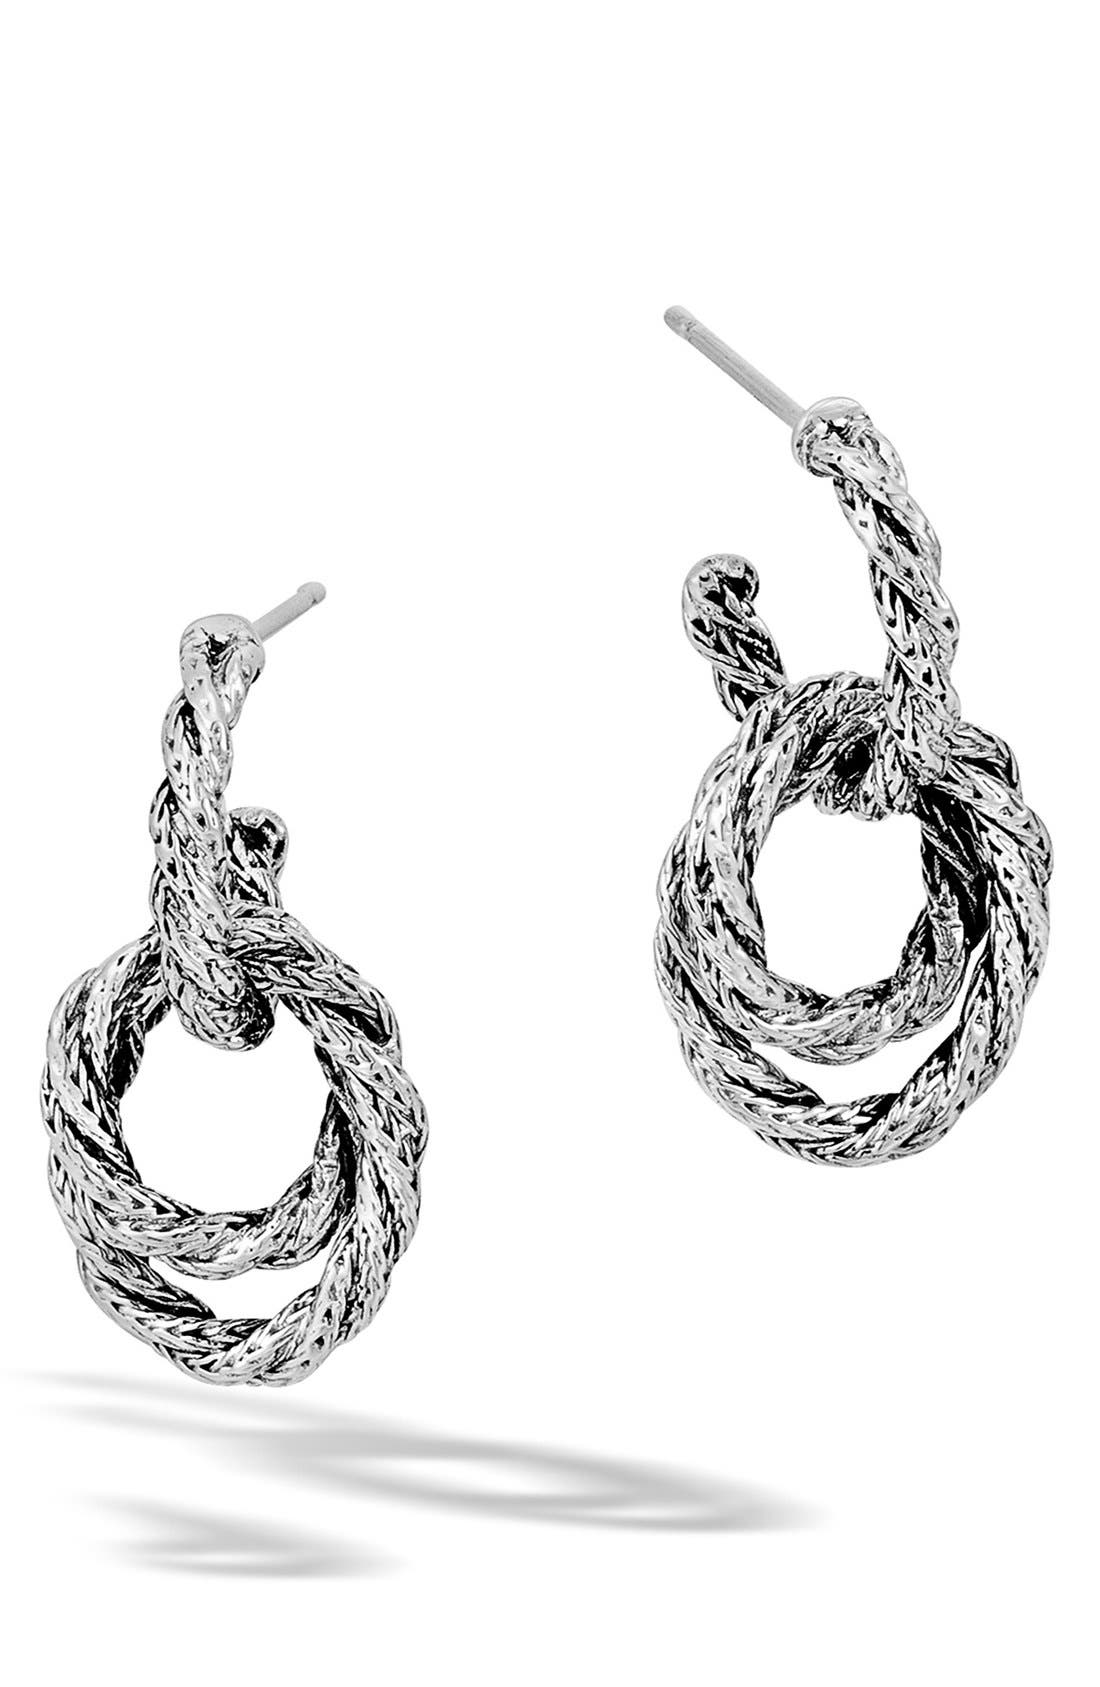 John Hardy 'Classic Chain' Double Twisted Hoop Earrings